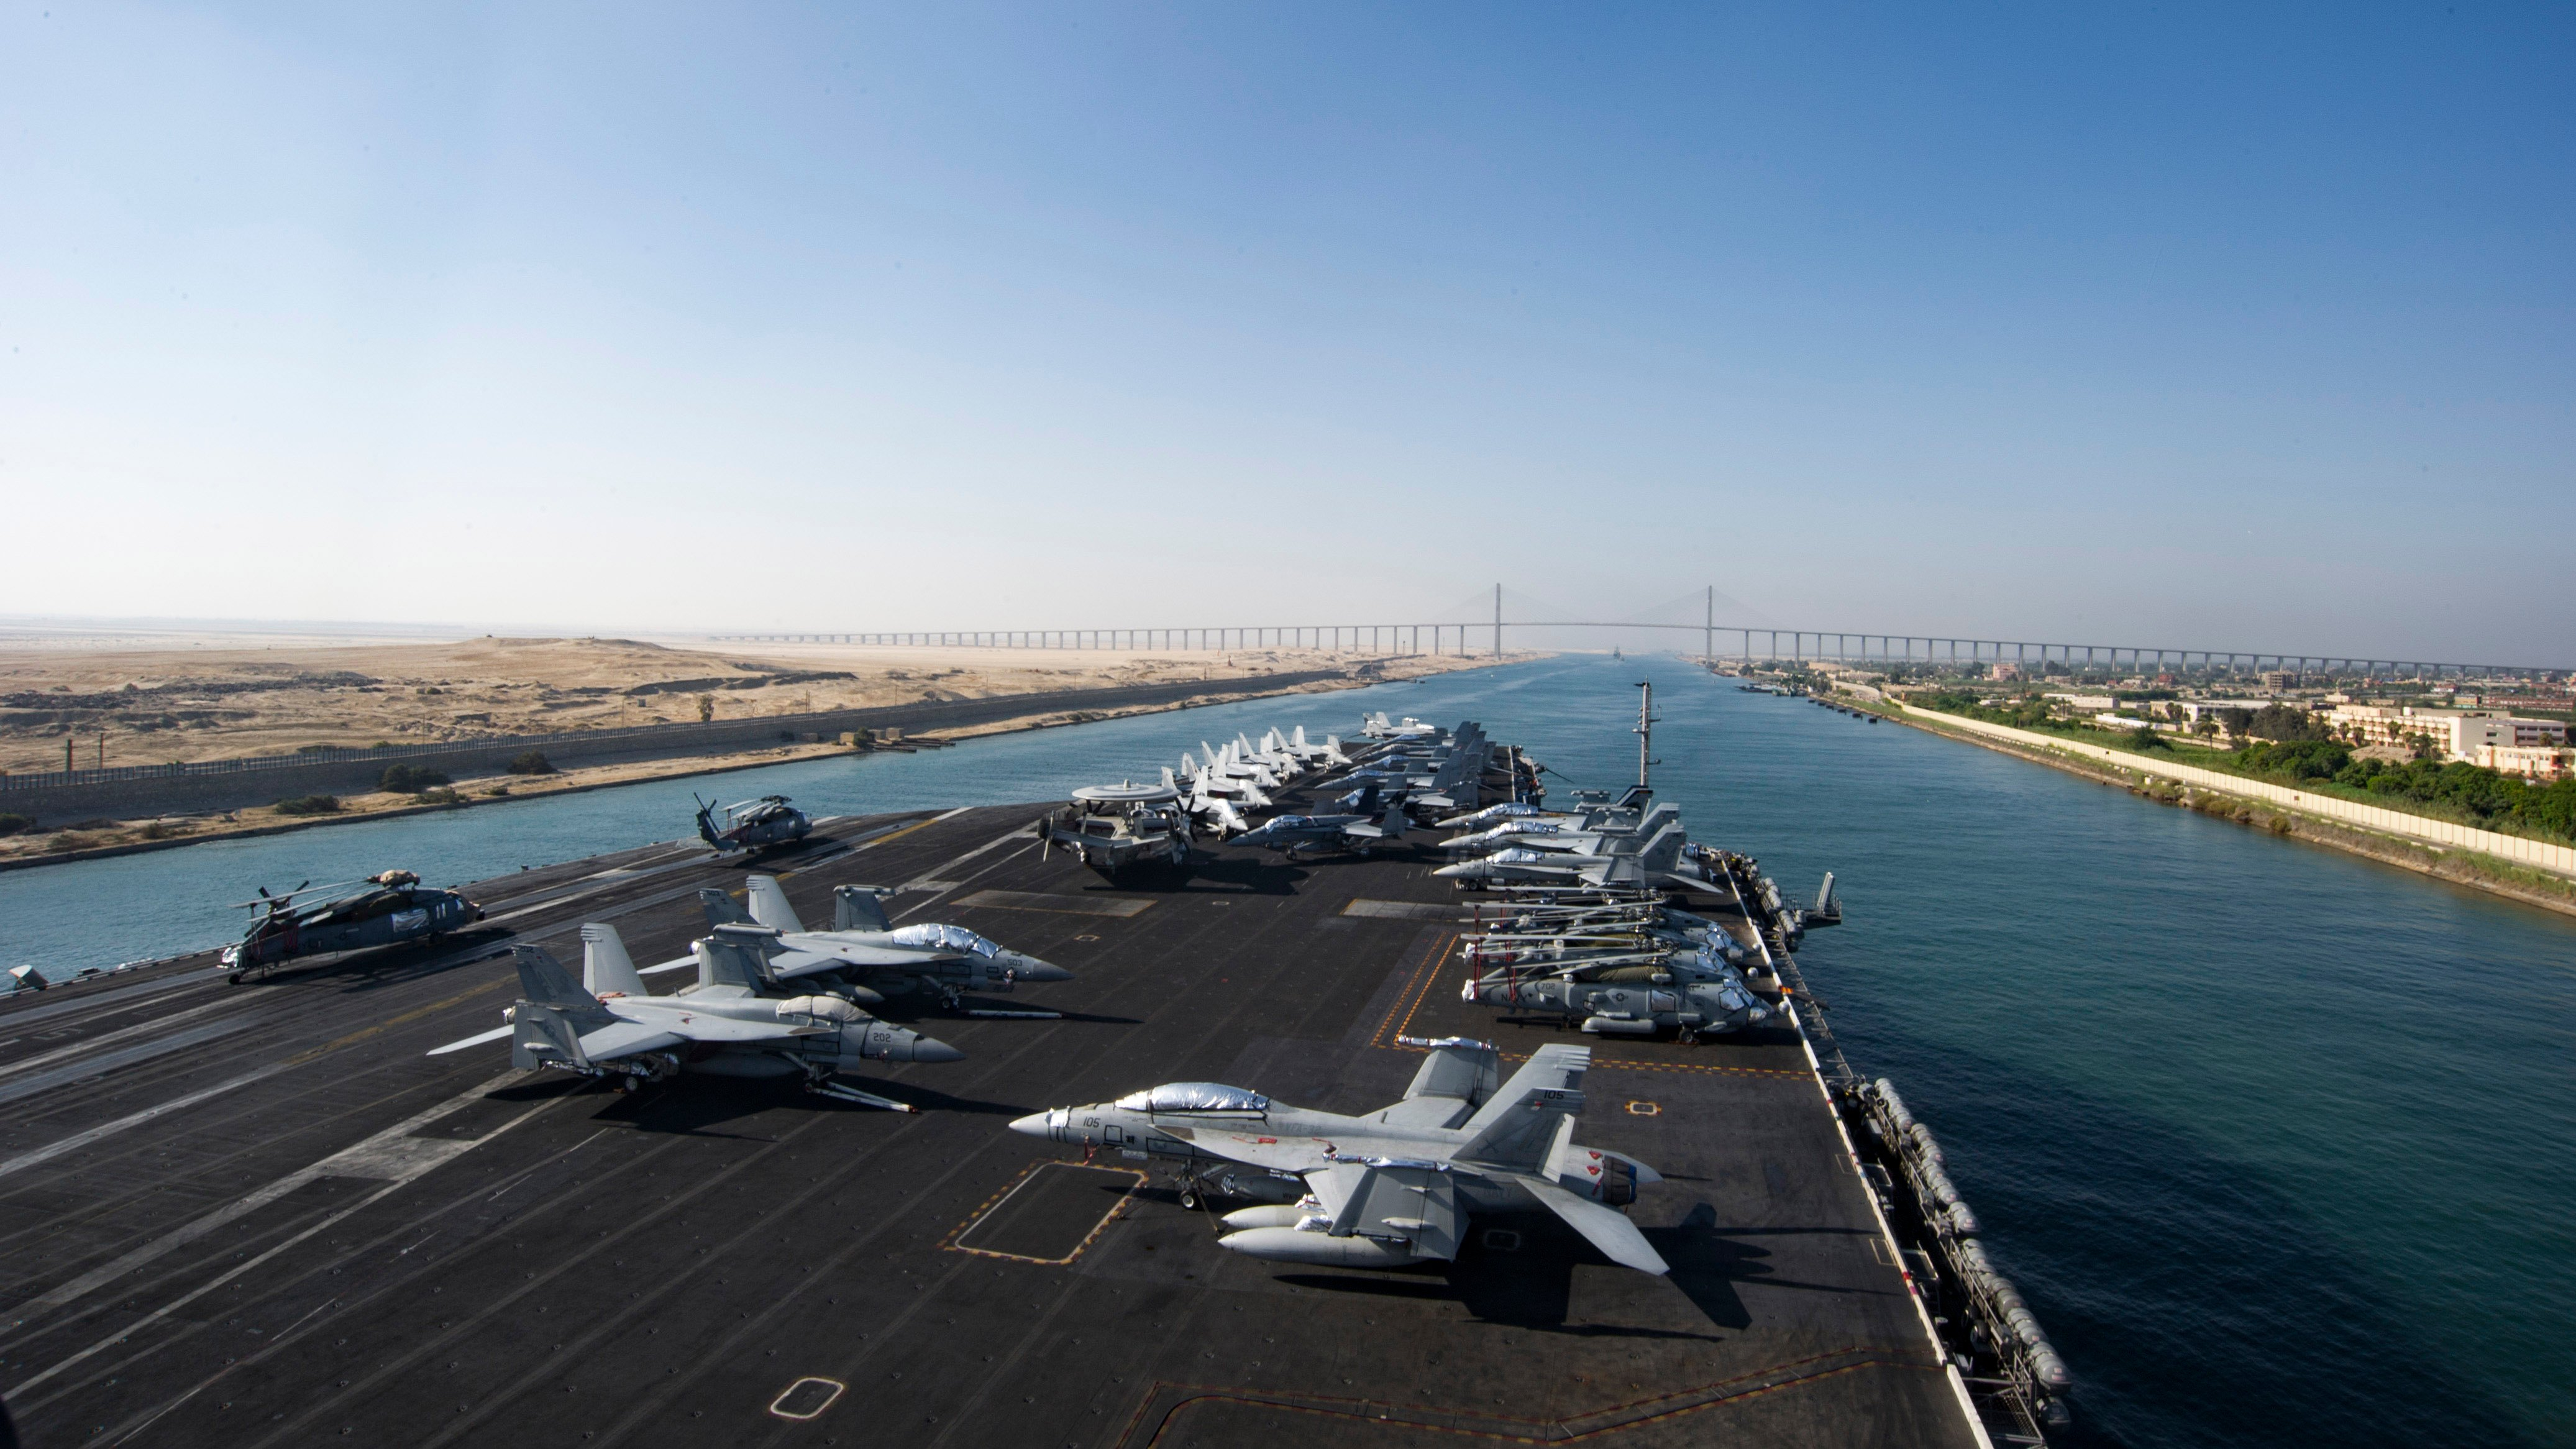 The aircraft carrier USS Dwight D. Eisenhower (CVN 69) approaches the Friendship Bridge as it transits the Suez Canal on July 8, 2016. The Eisenhower Carrier Strike Group was deployed in support of maritime security operations and theater security cooperation efforts in the U.S. 5th and 6th Fleet area of operations. US Navy photo.